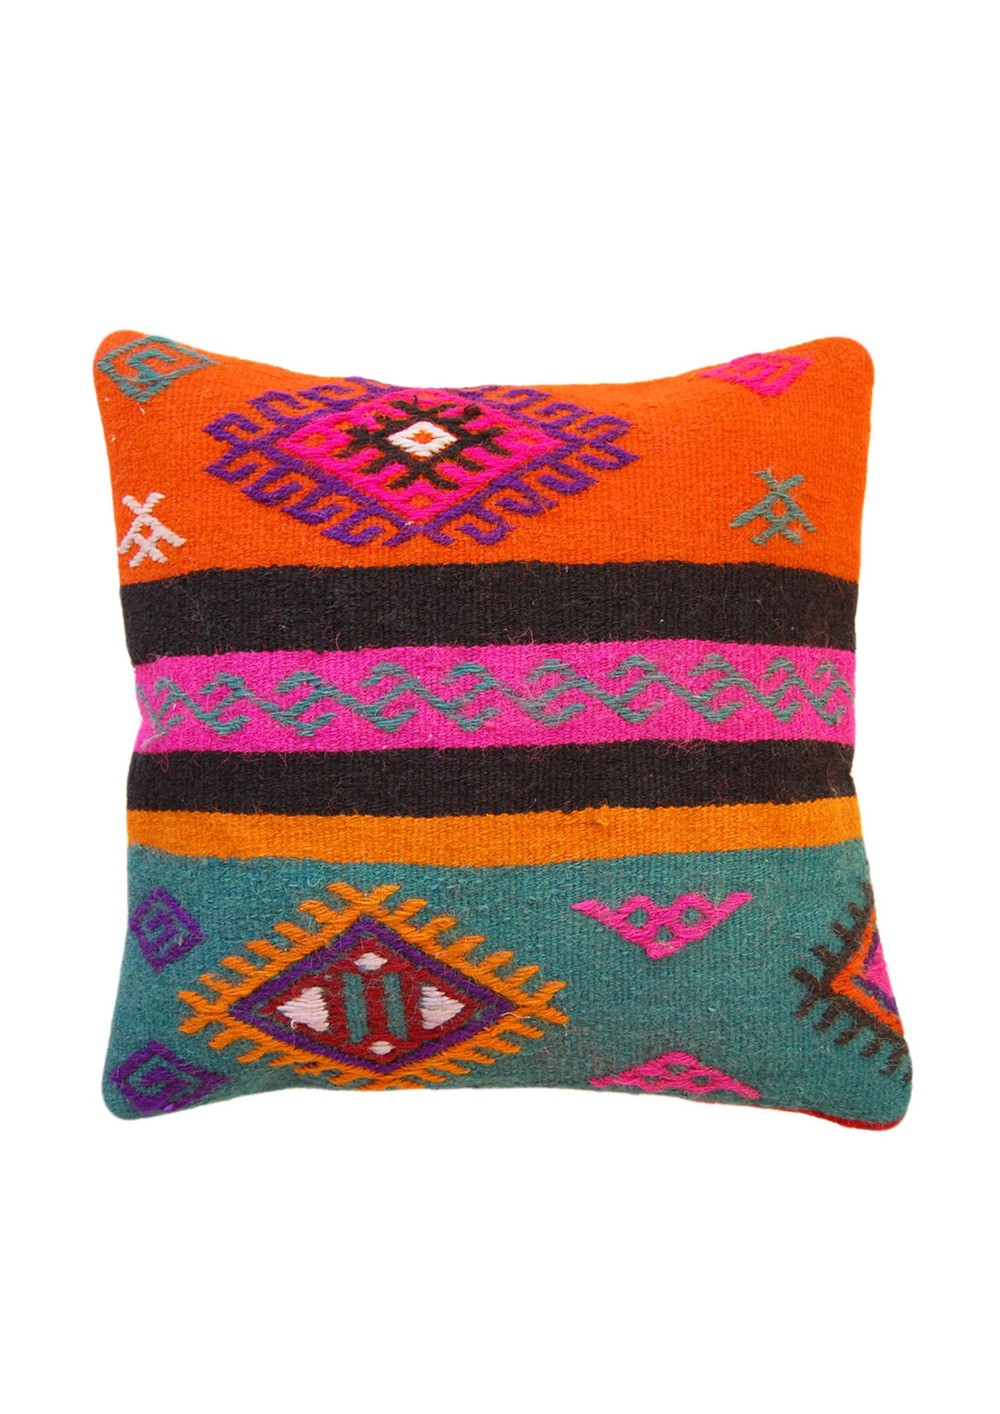 Yonder Living Sao Paulo cushion